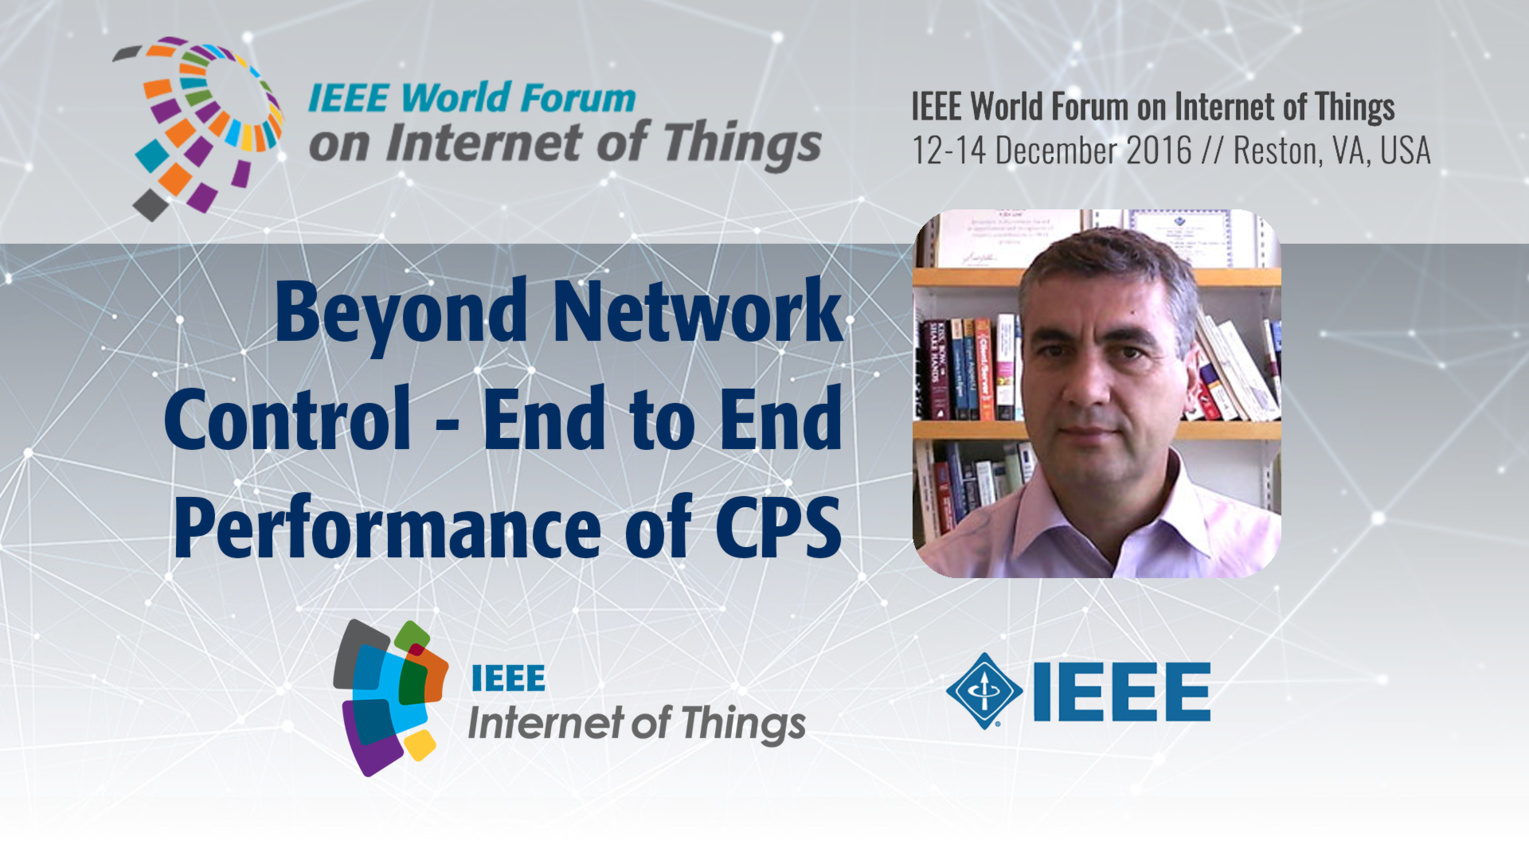 Marin Litoiu: Beyond Network Control - End to End Performance of CPS: WF IoT 2016